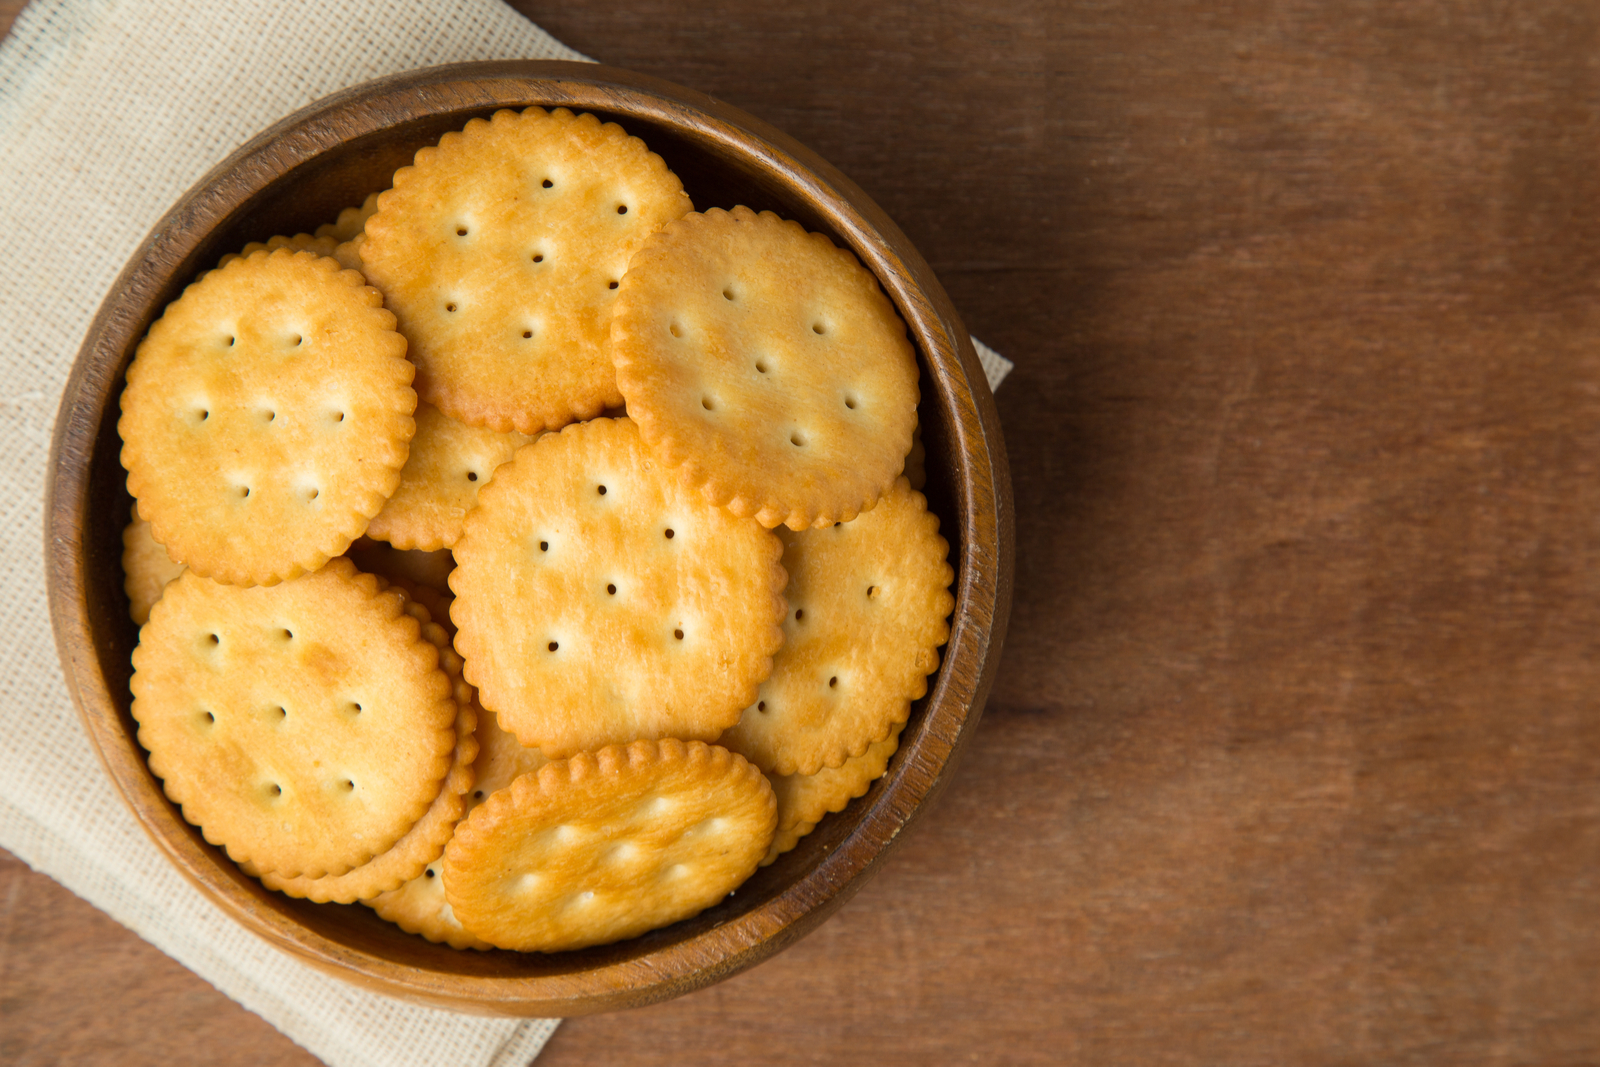 Ritz Crackers | 15 Popular Snack Foods That Are Actually Vegan Approved